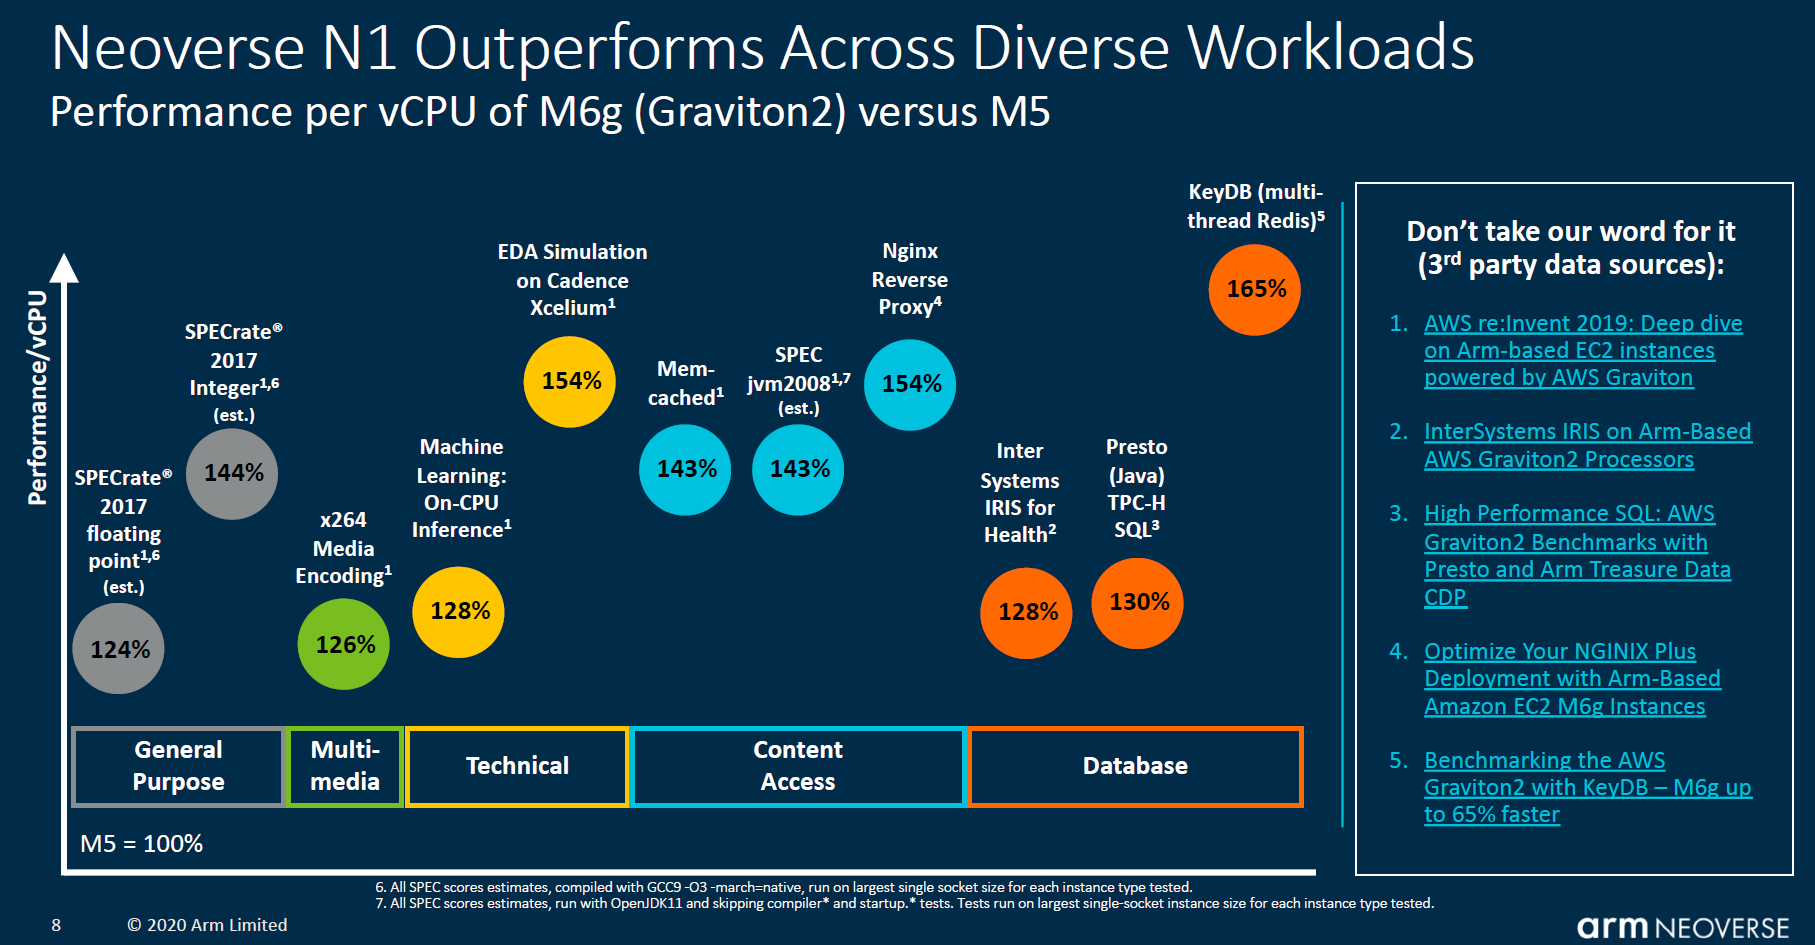 Arm Neoverse N1 2020 AWS Performance Claims